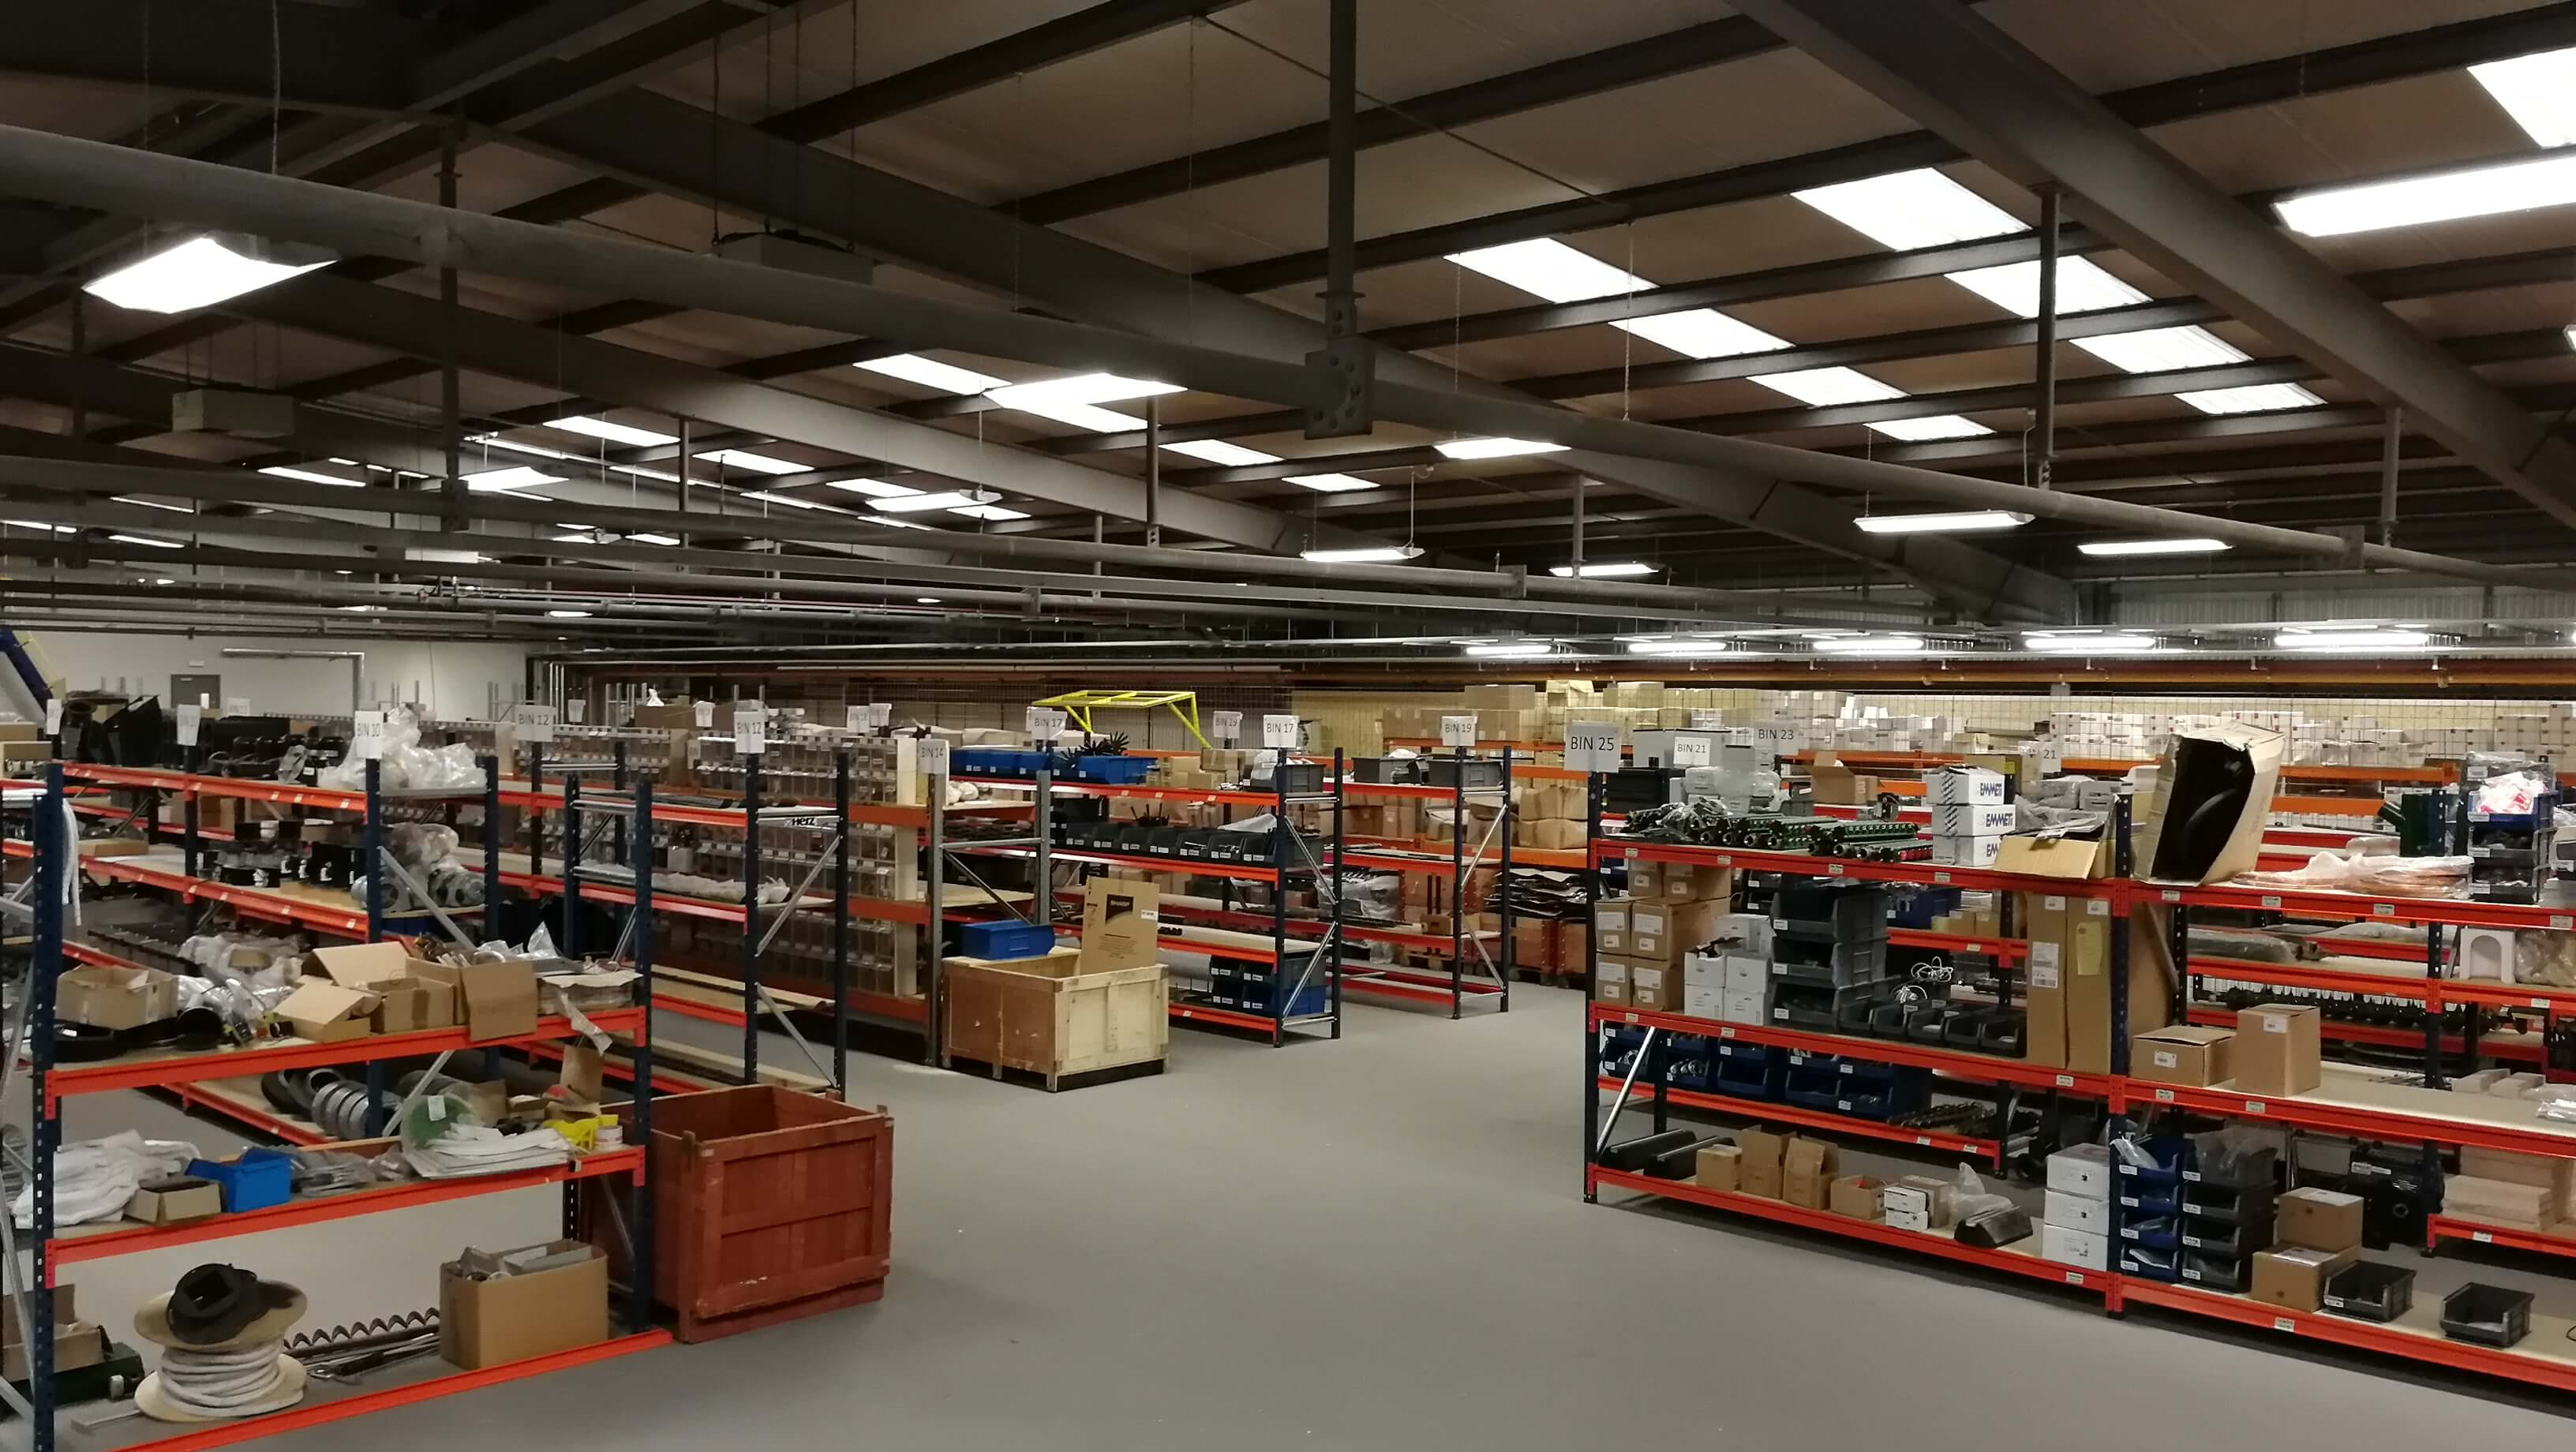 SPares and Parts stores